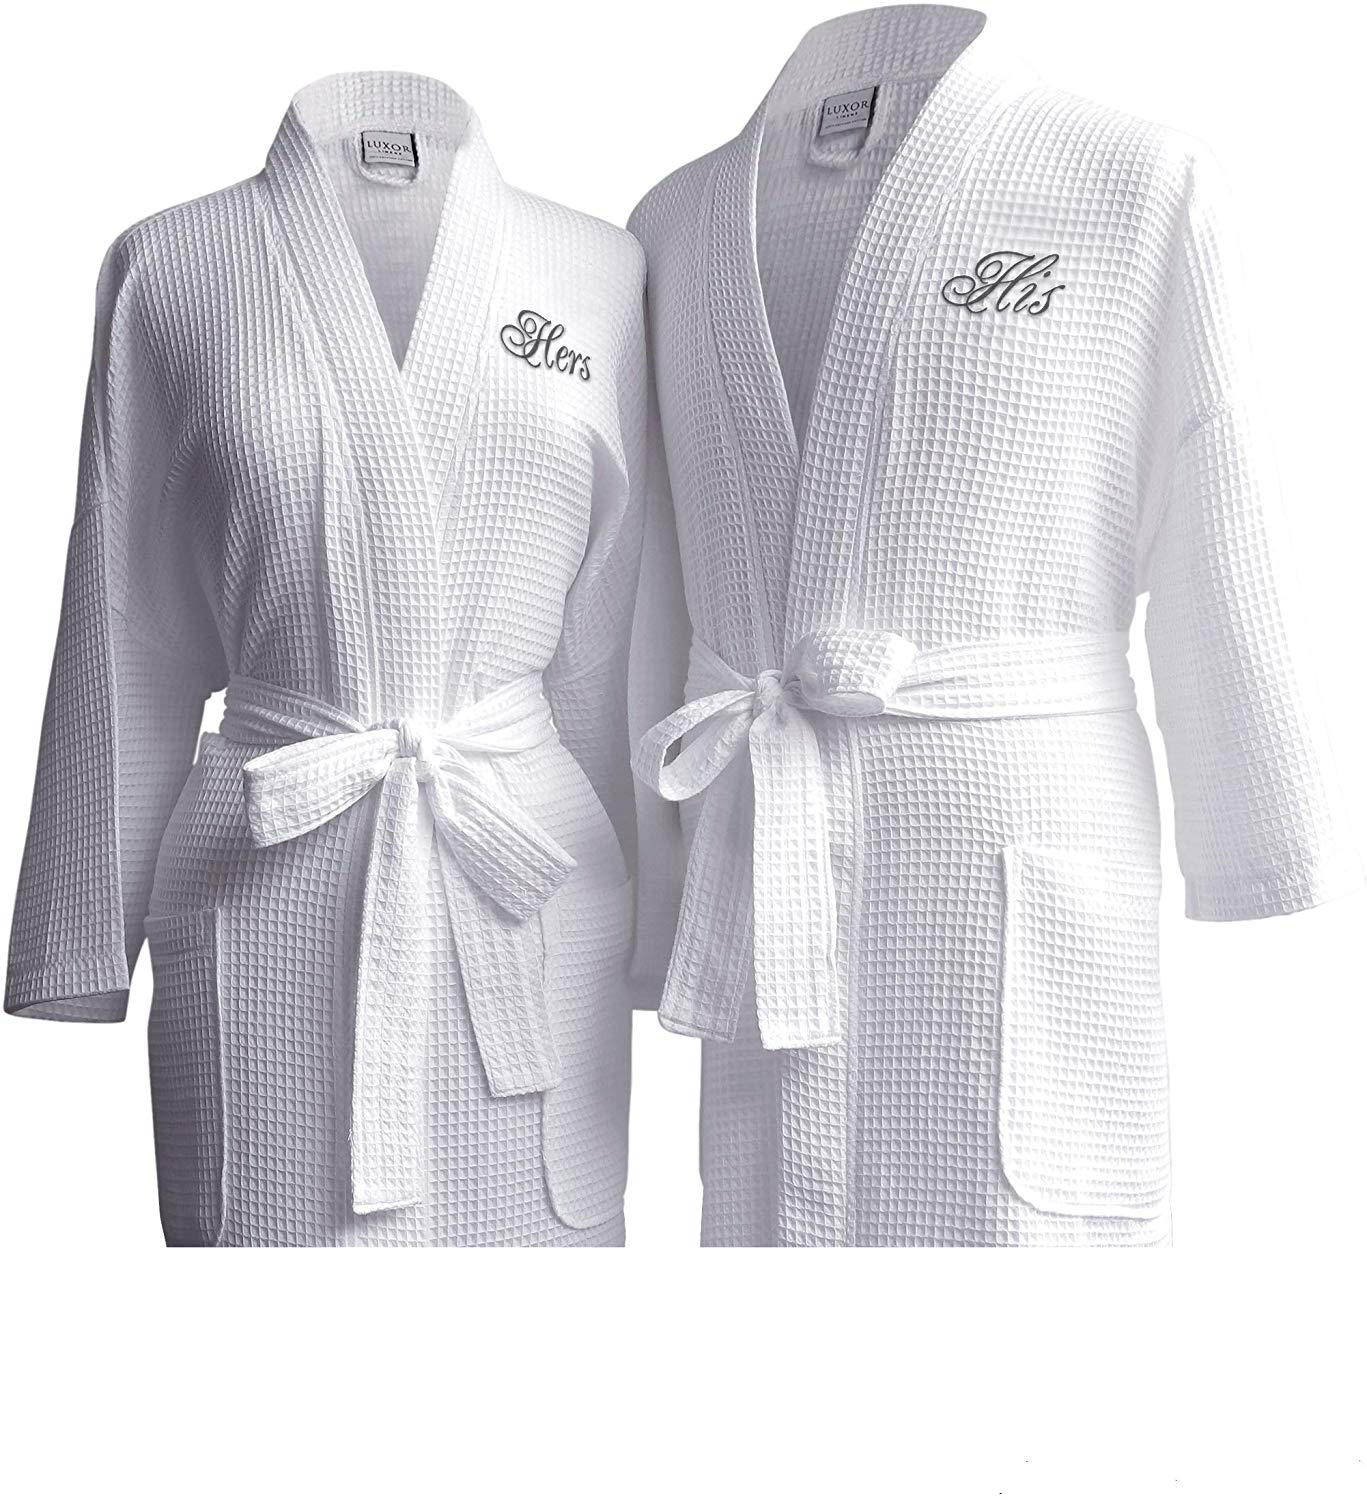 Luxor Linens Waffle Weave Spa Bathrobe - Ciragan Collection - Luxurious, Super Soft, Plush & Lightweight - 100% Egyptian Cotton, Made in Turkey (His/Hers, with Gift Packaging)